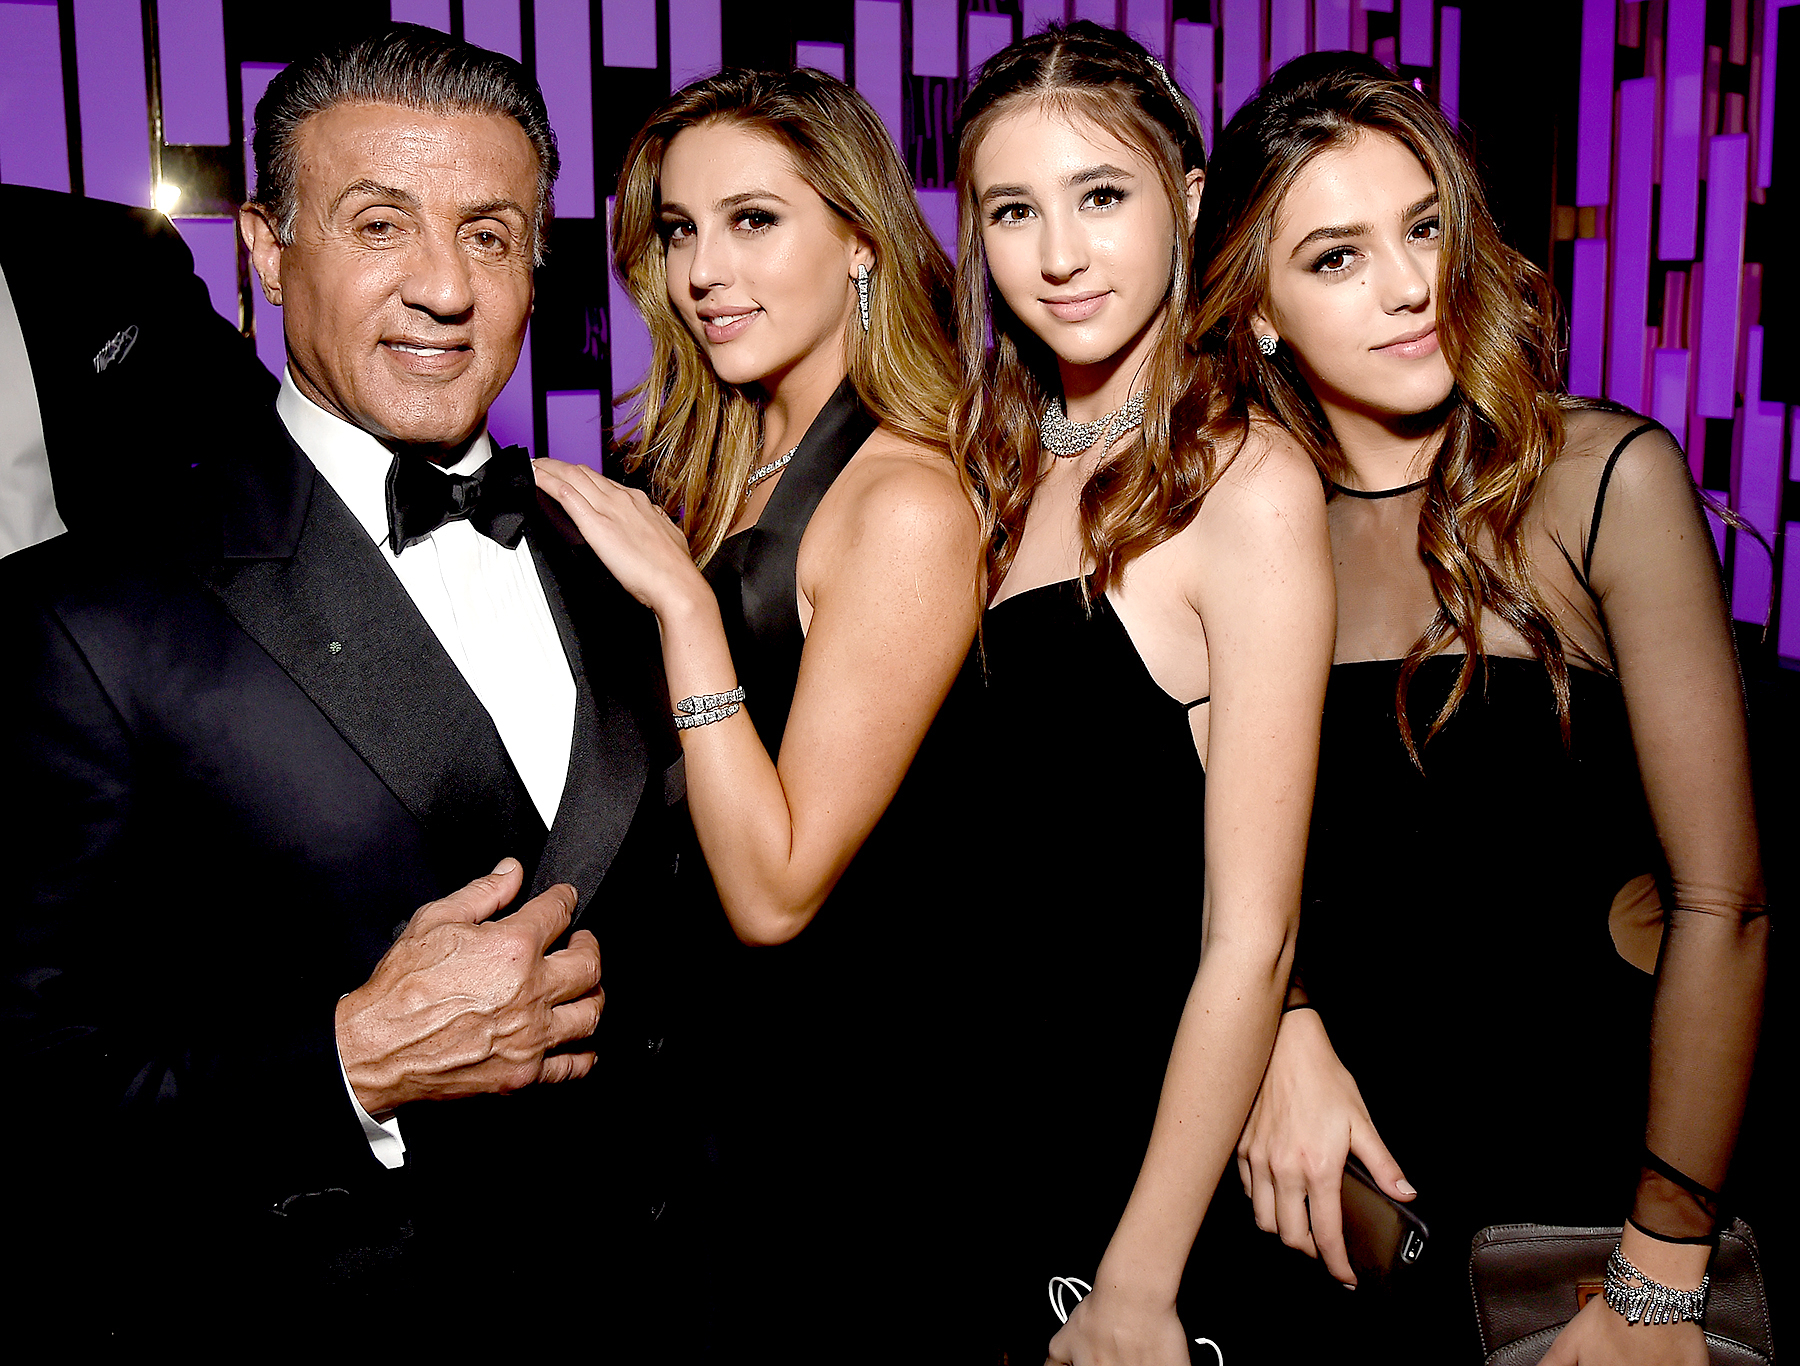 Sylvester Stallone, Scarlet Rose Stallone, Sophia Rose Stallone and Sistine Rose Stallone attend The 2017 InStyle and Warner Bros. 73rd Annual Golden Globe Awards Post-Party at the Beverly Hilton Hotel on January 8, 2017 in Beverly Hills, California.